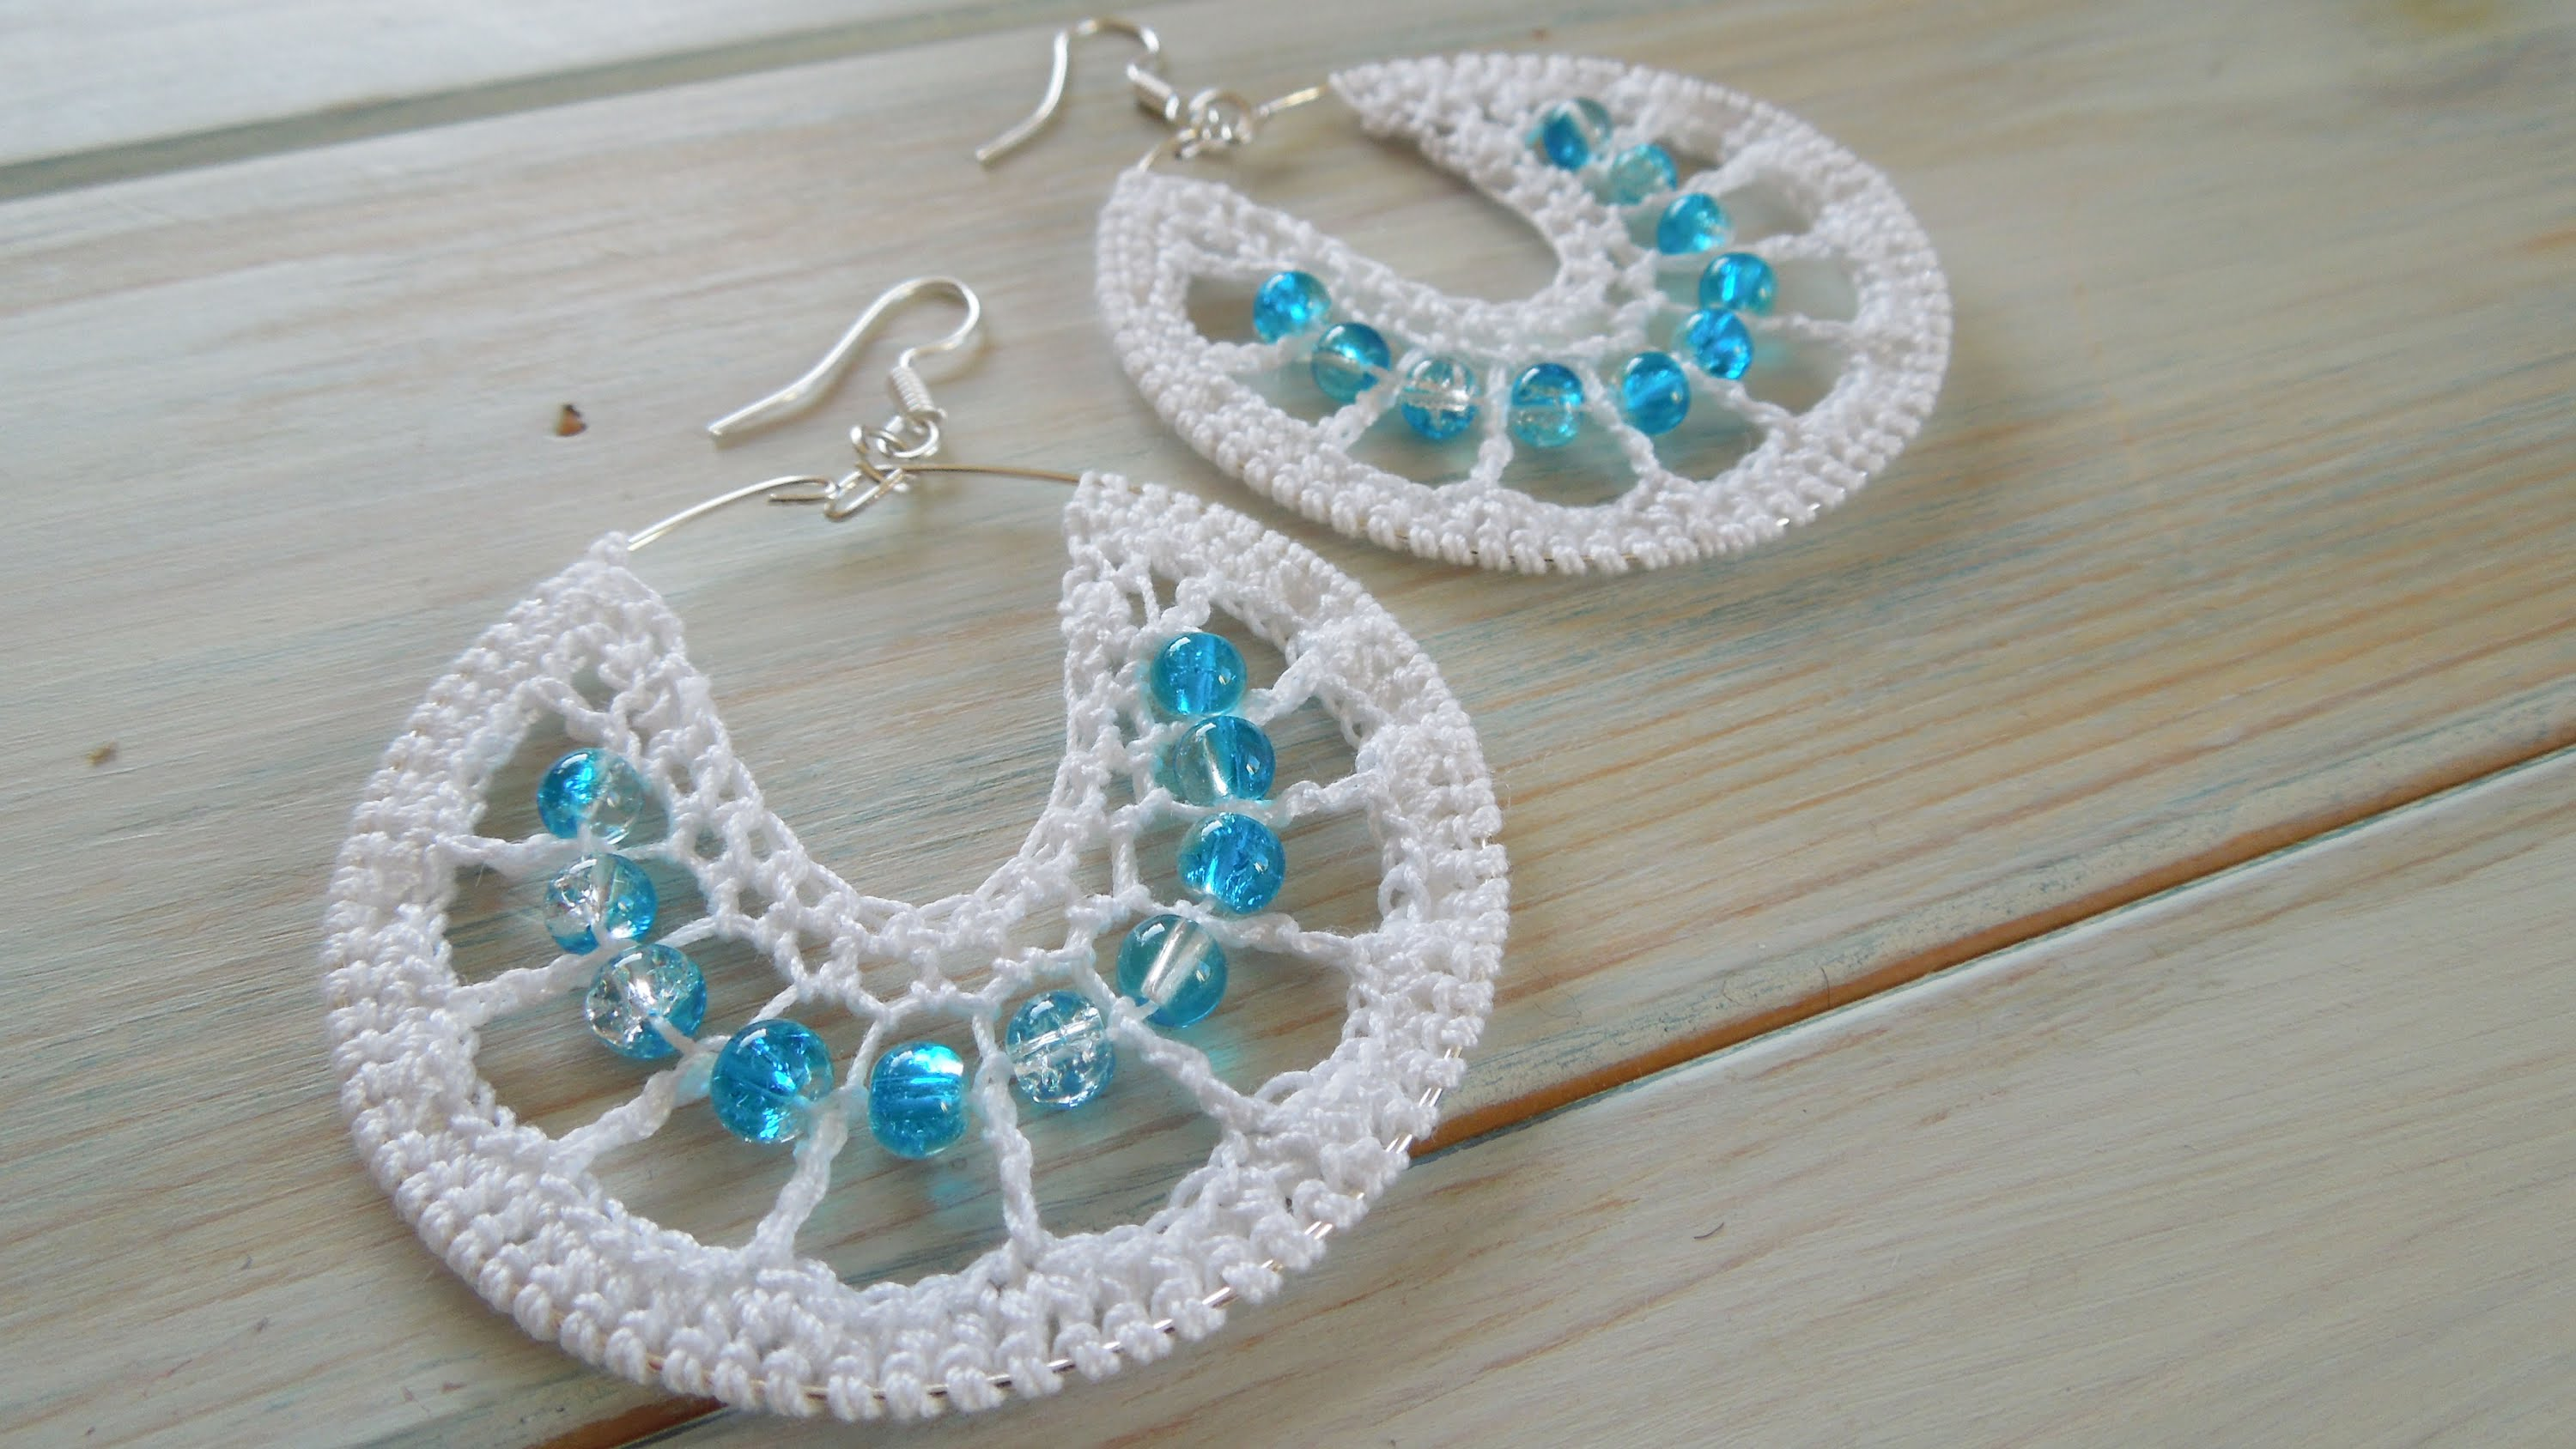 (crochet) how to crochet earrings version 1 vbwdyub